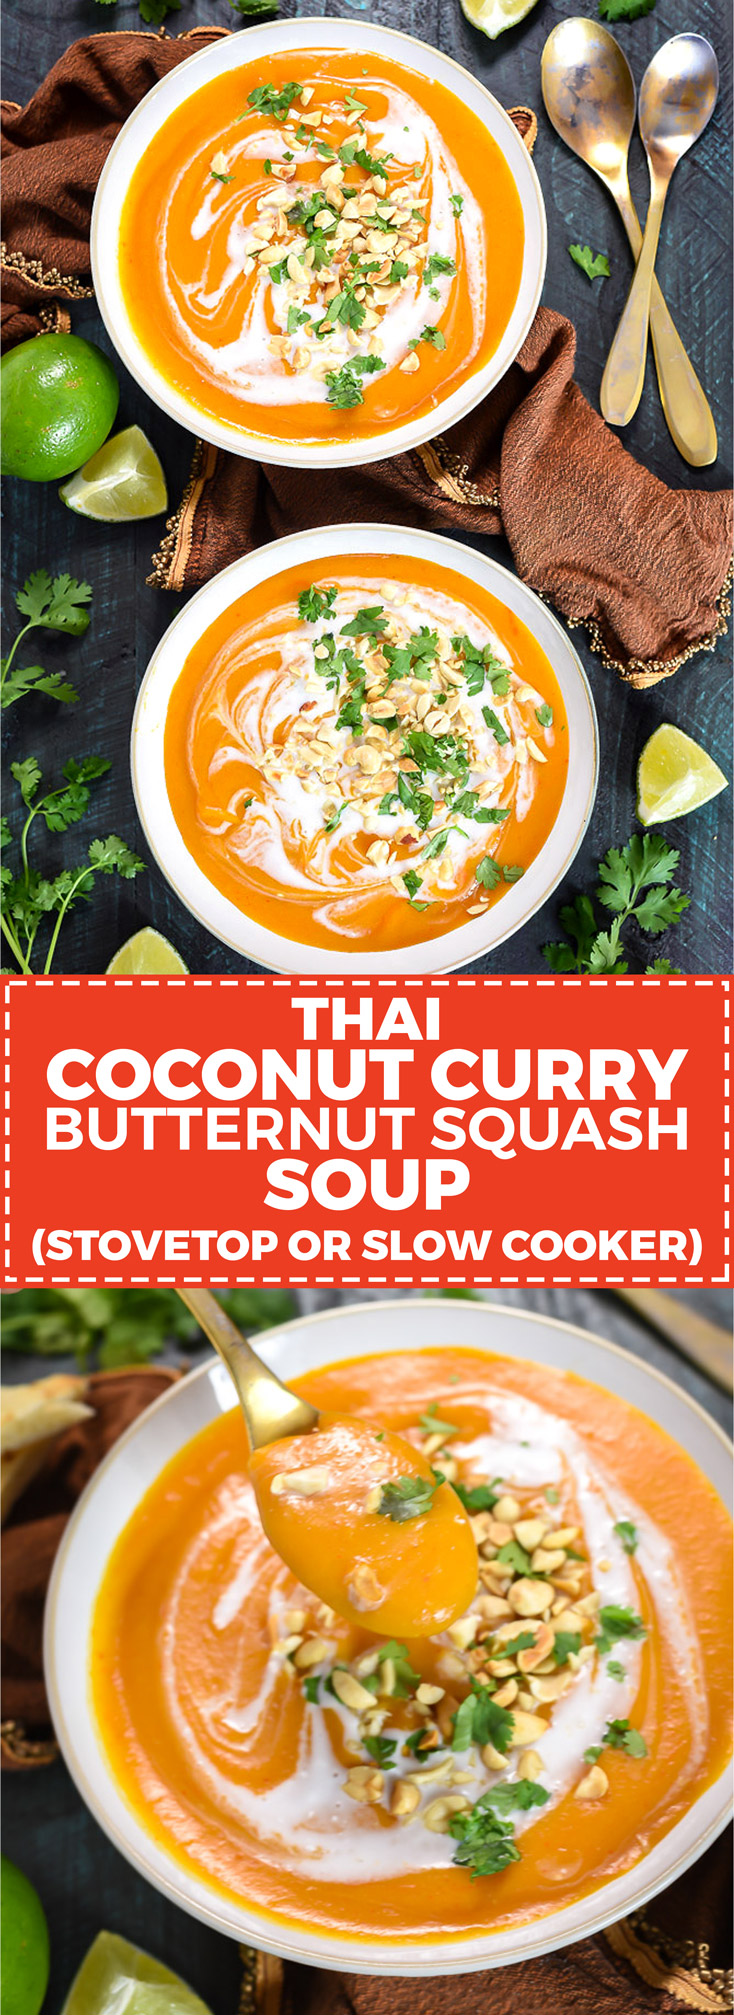 Thai Coconut Curry Butternut Squash Soup. Whether you make it in the slow cooker or on the stove top, you're going to love this flavorful, comforting, delicious fall soup. Dairy free, vegan-friendly, gluten free. | hostthetoast.com